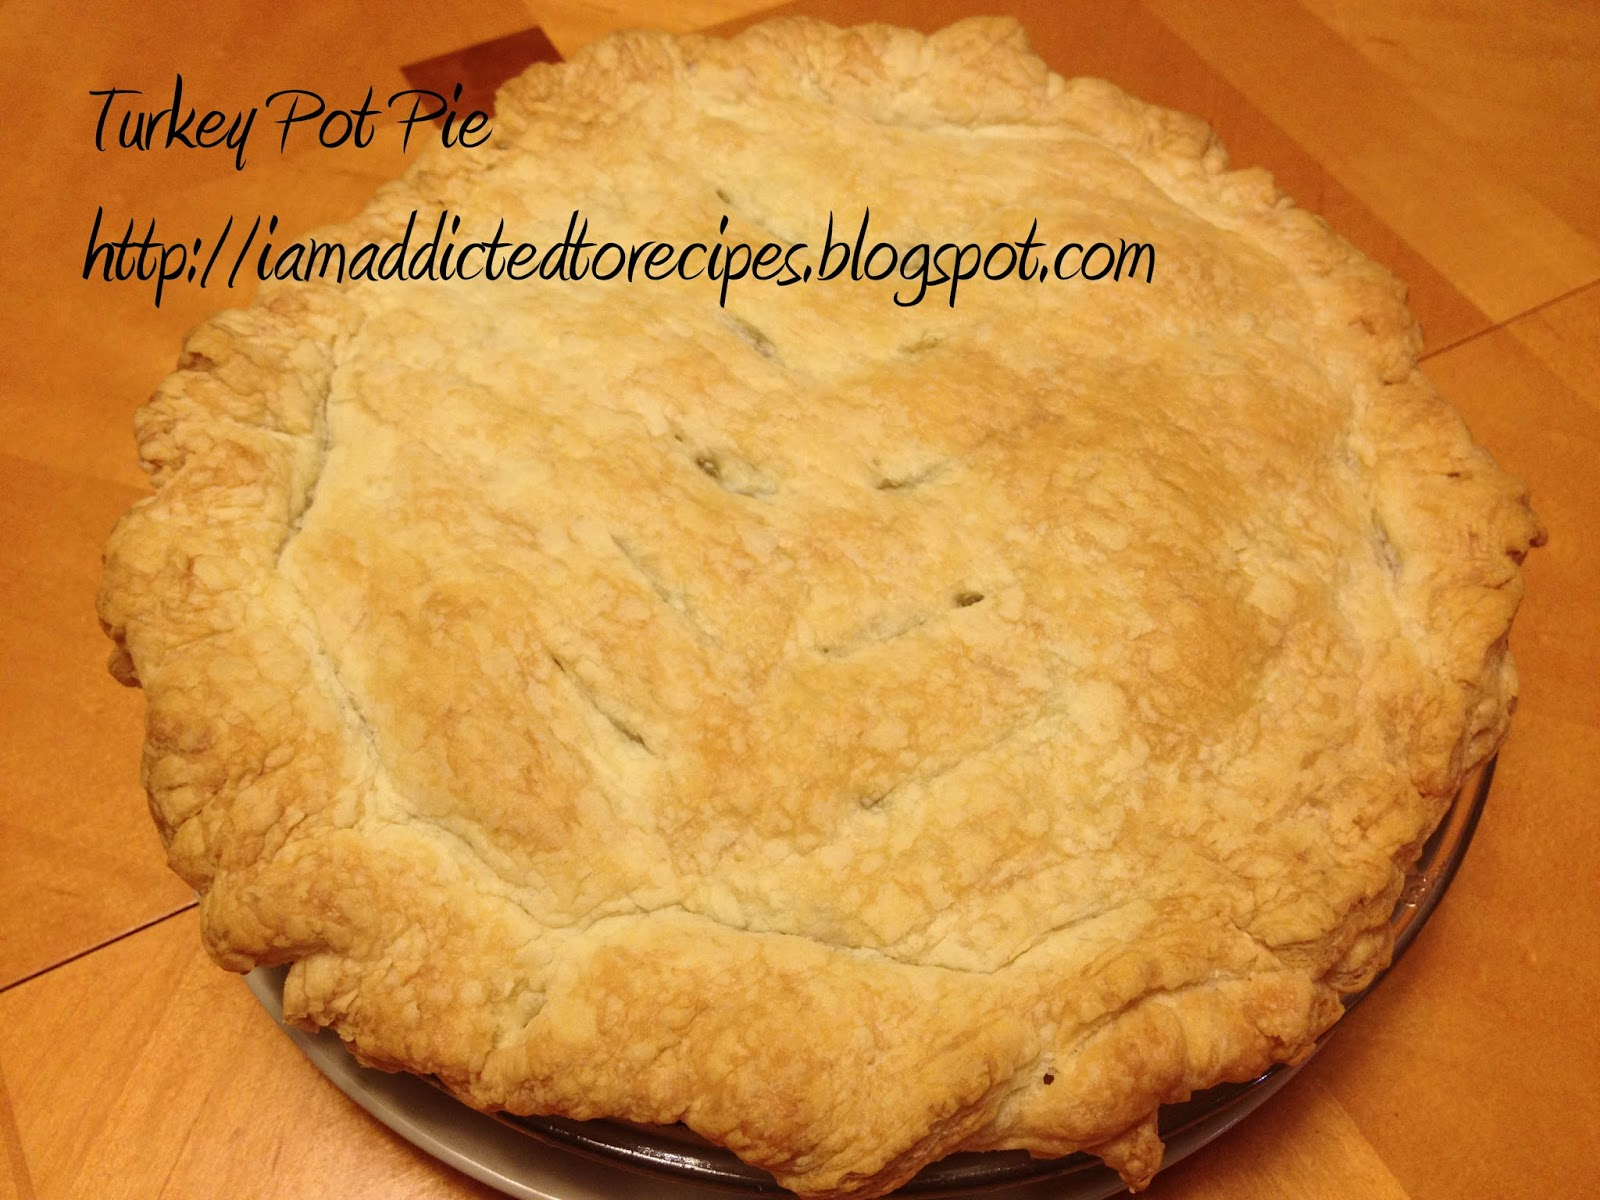 Turkey Pot Pie | Addicted to Recipes